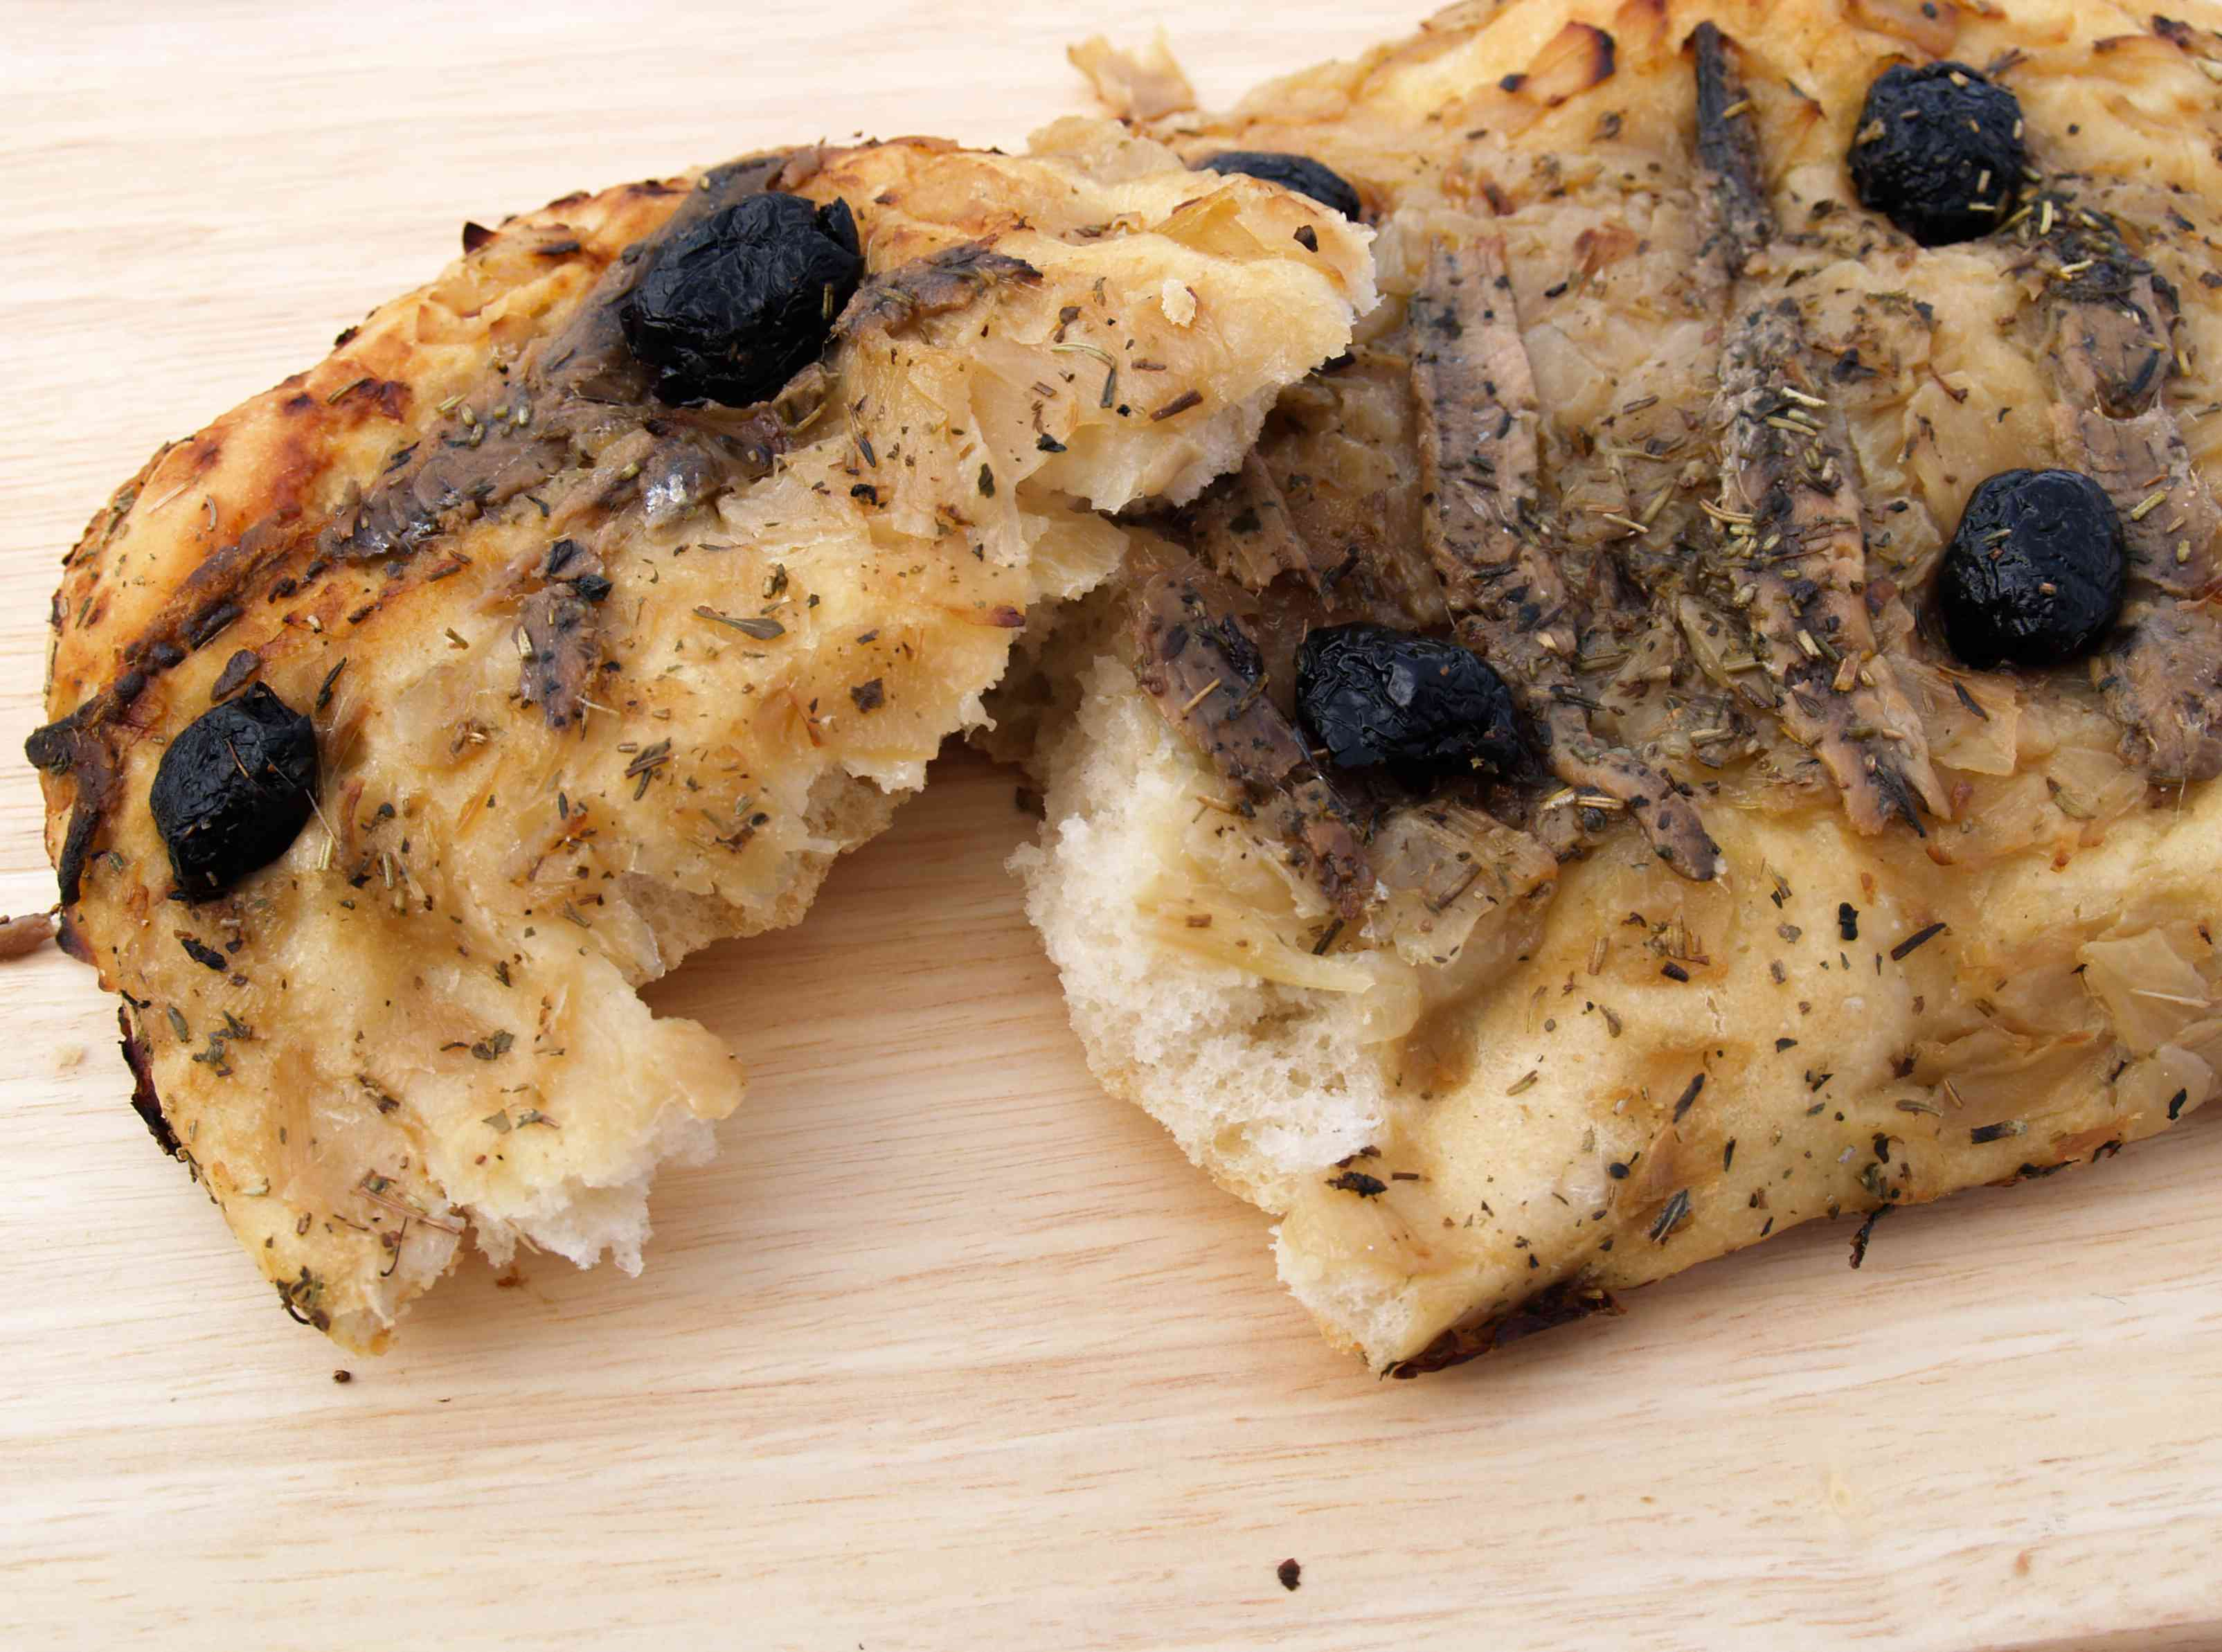 Close up of Fougasse bread baked with black olives and anchovies